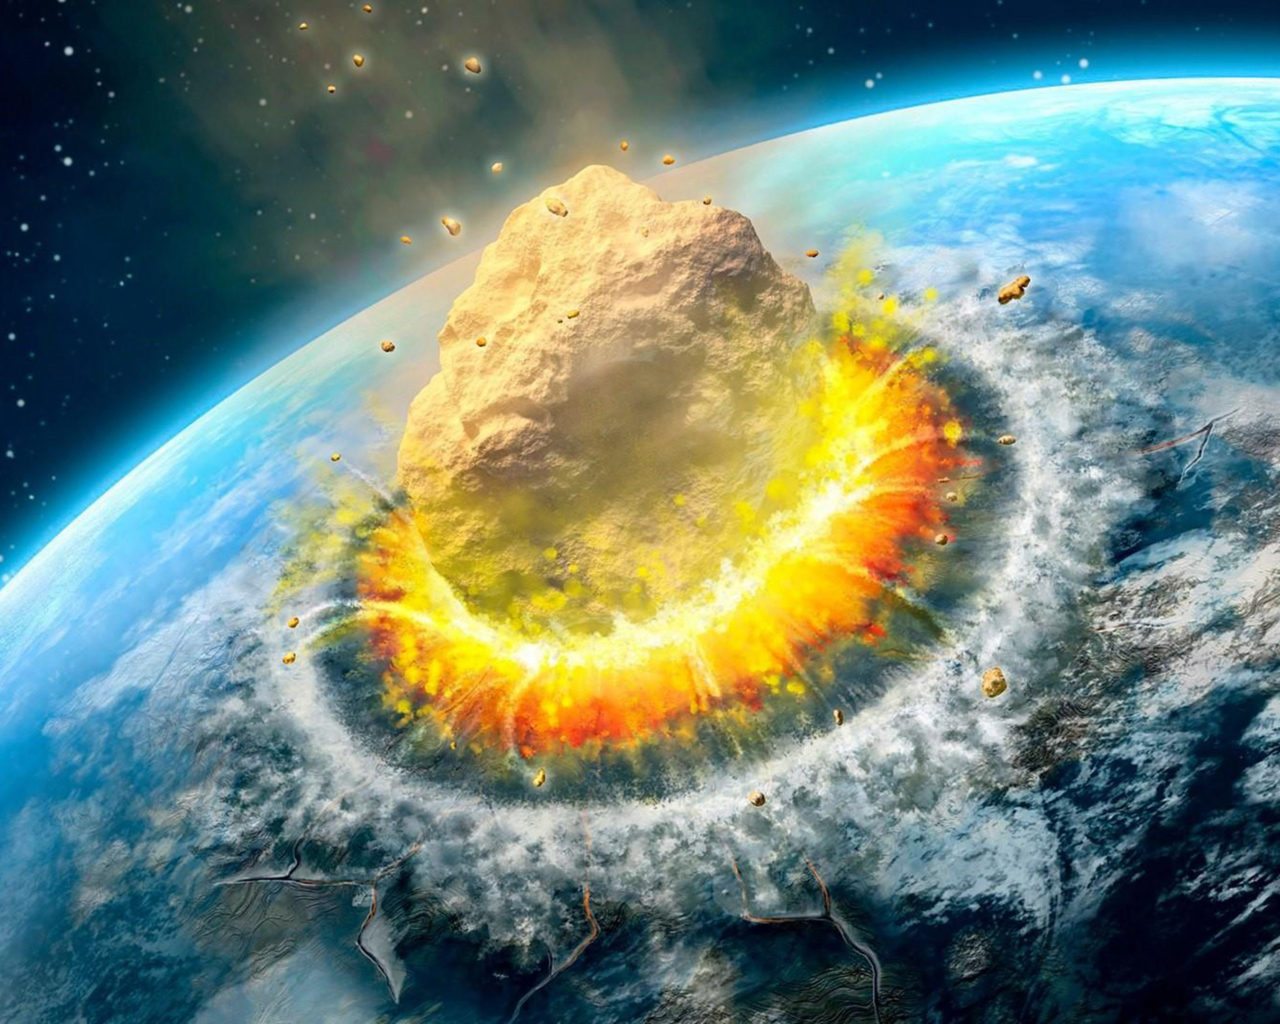 Iphone Moving Wallpaper Iphone X Asteroid Impact Falling Asteroid On Earth Ultra Hd